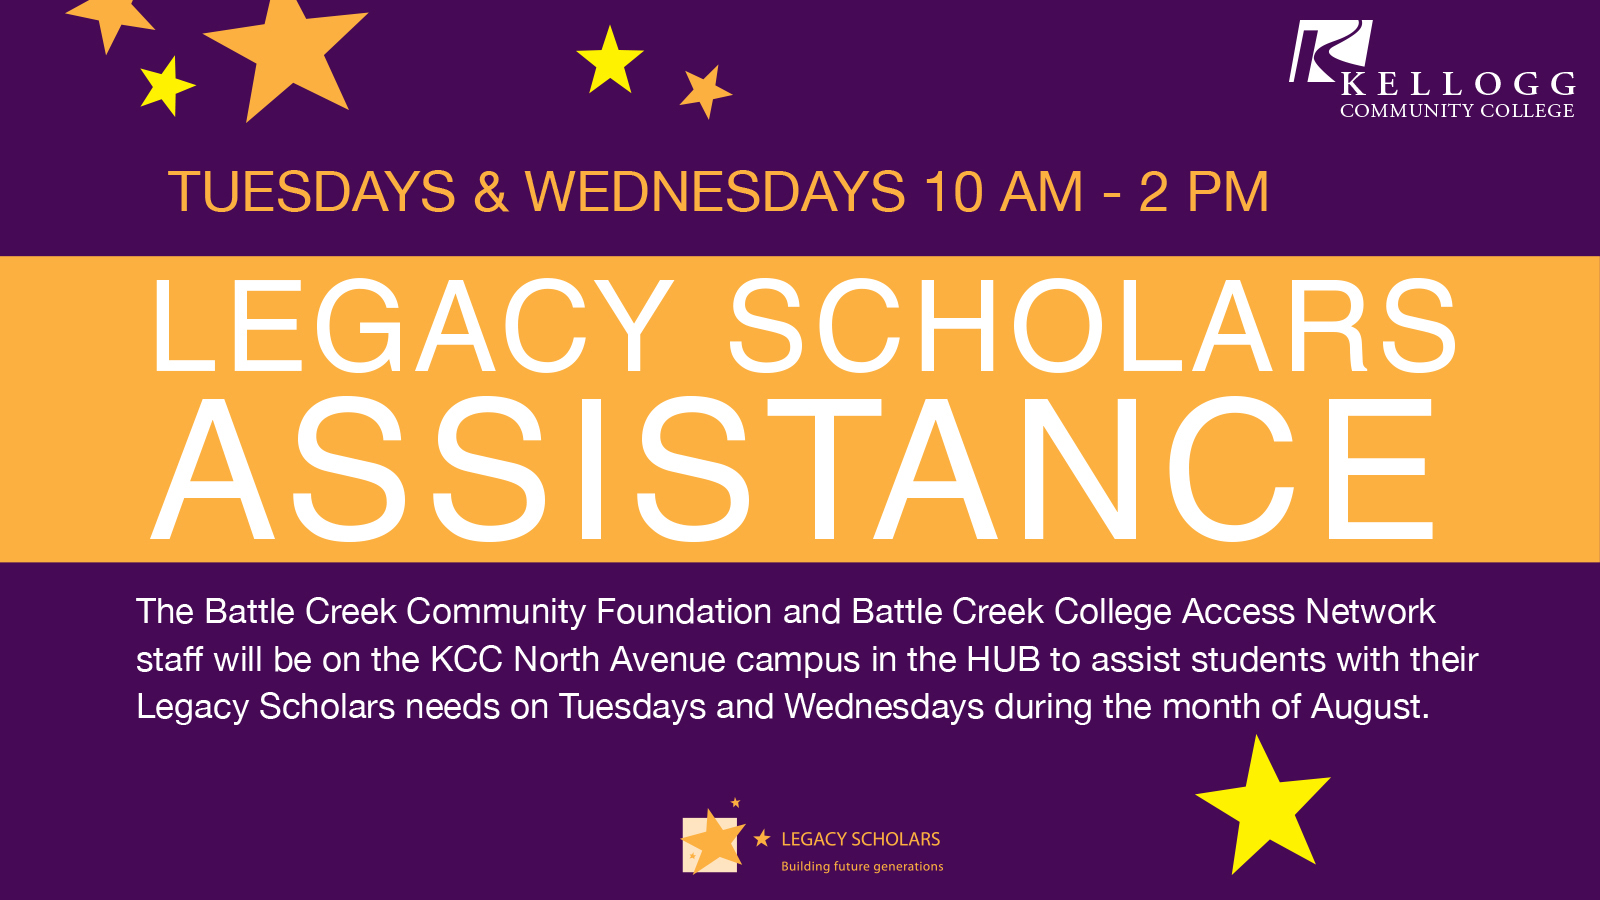 A text slide with information about upcoming Legacy Scholars Assistance days, to be held on campus in Battle Creek from 10 a.m. to 2 p.m. every Tuesday and Wednesday in August 2017.